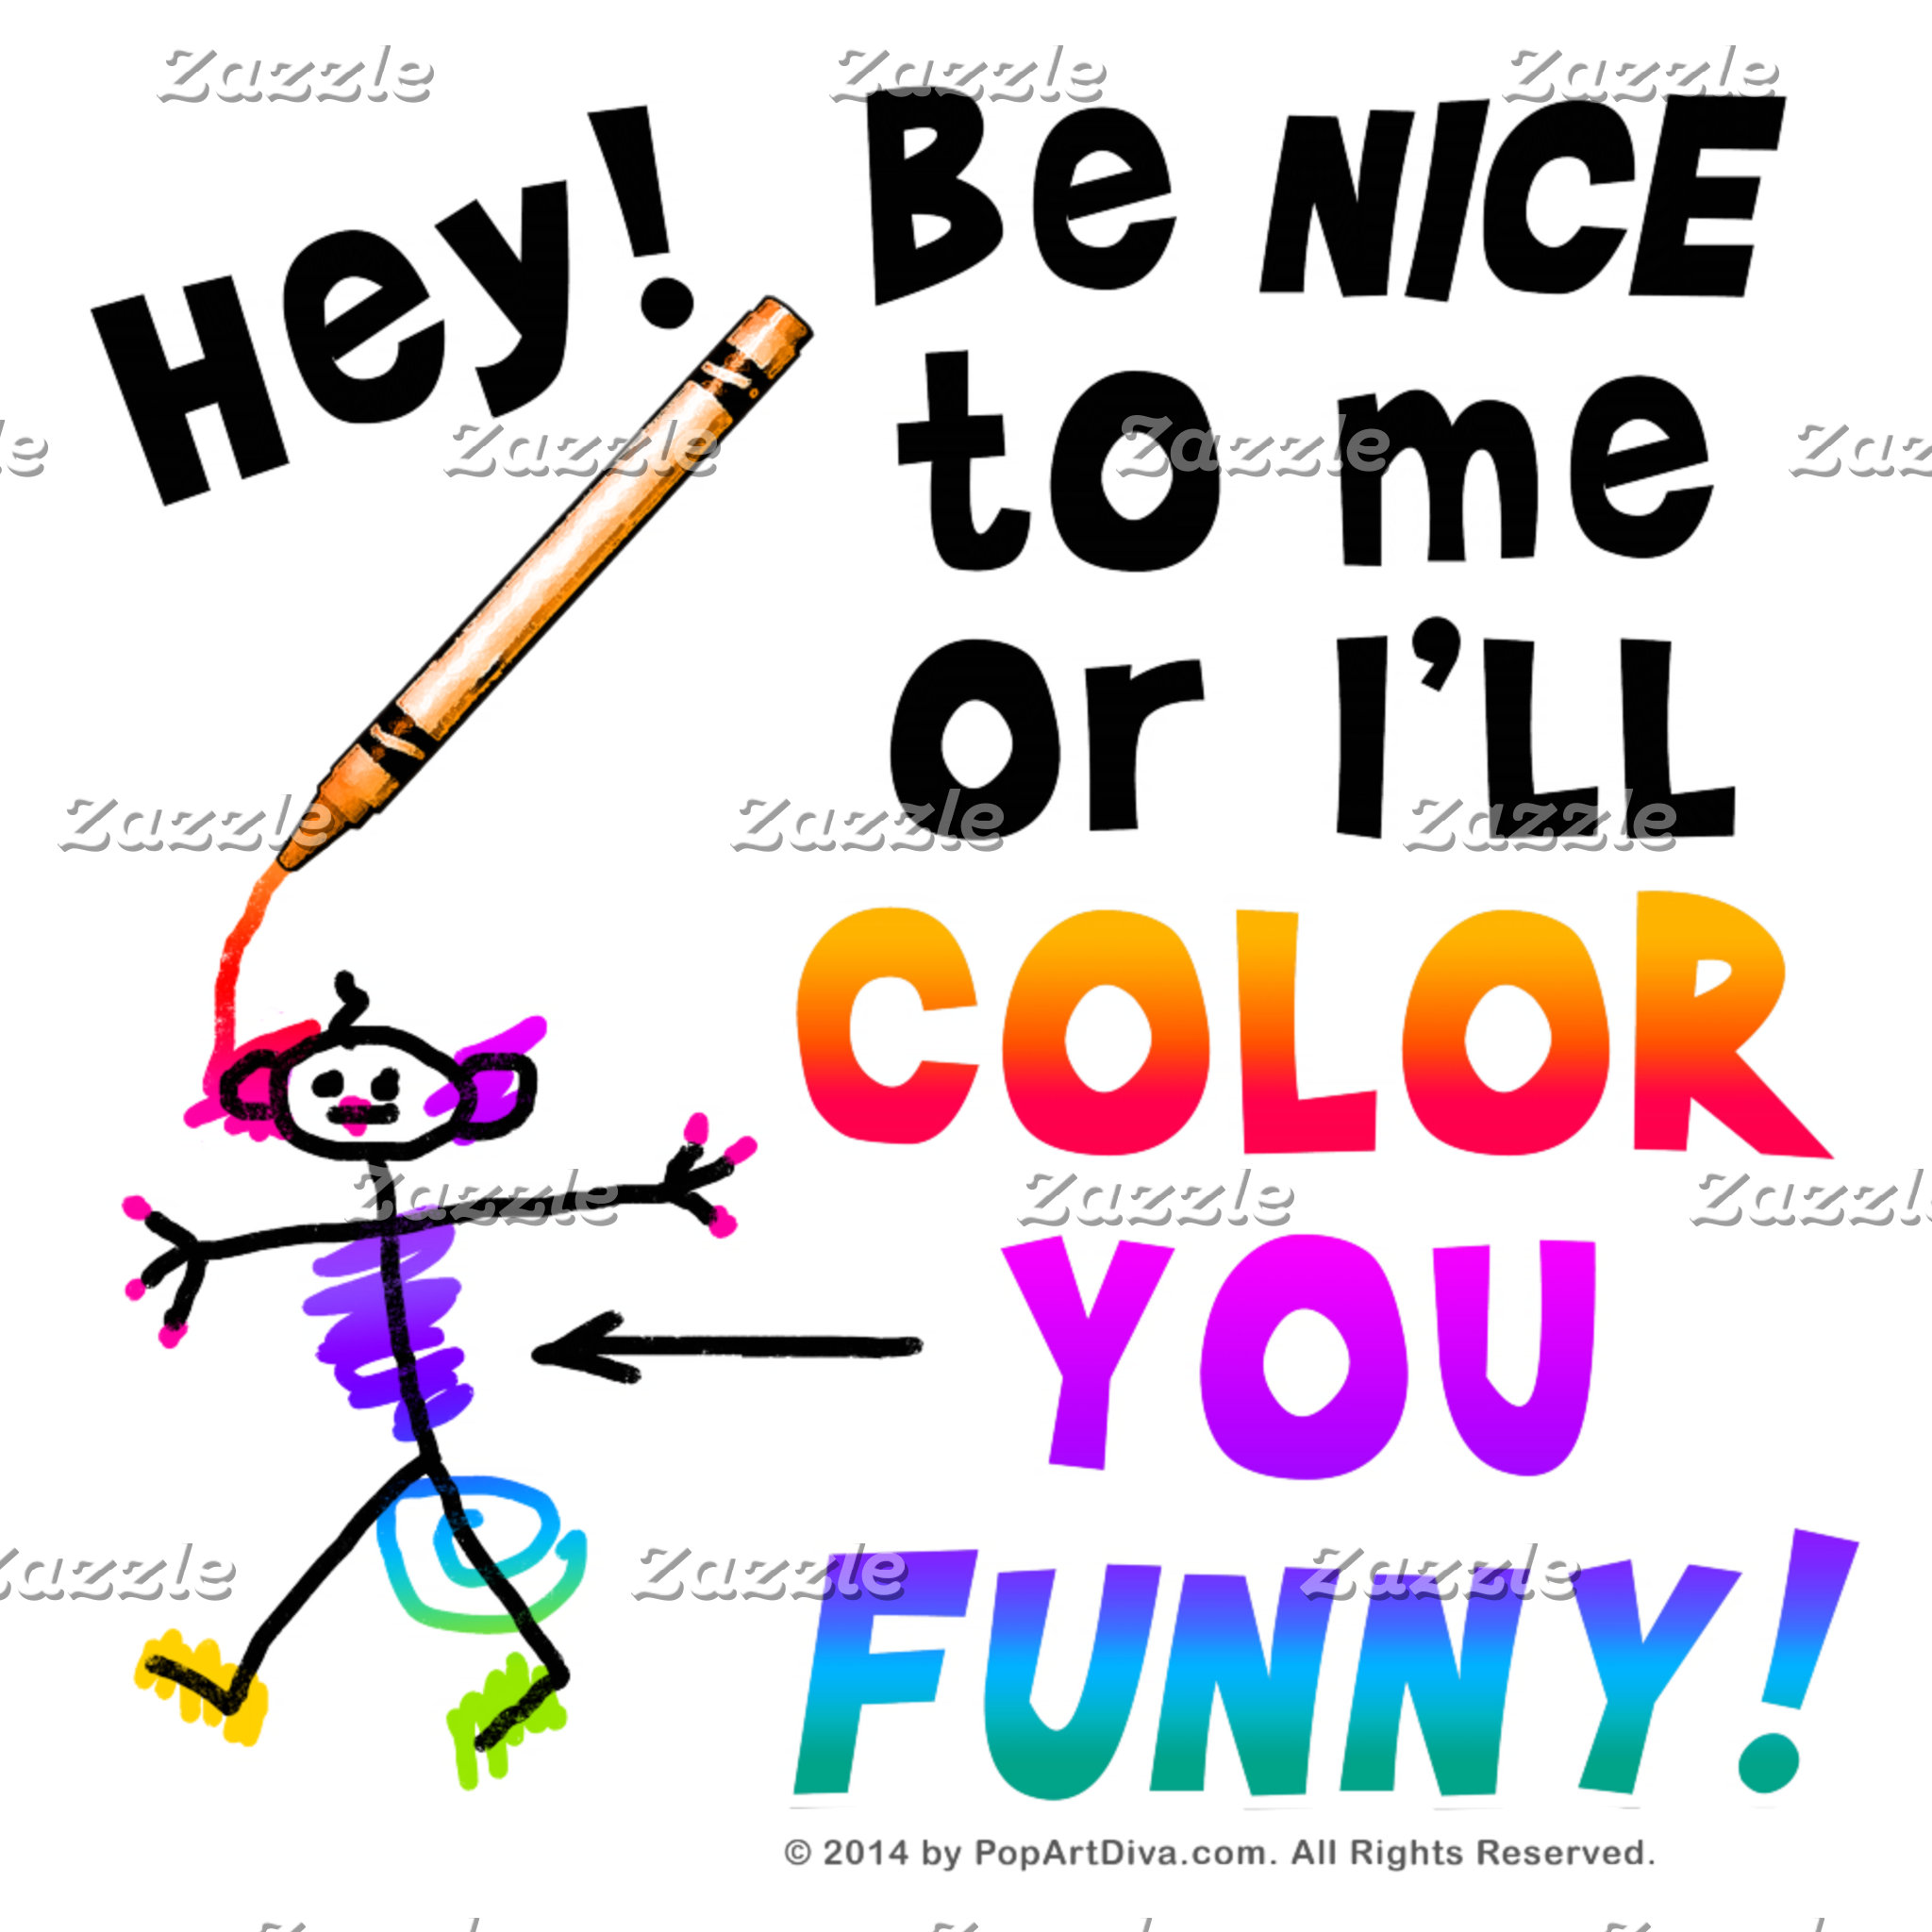 b7. COLOR YOU FUNNY